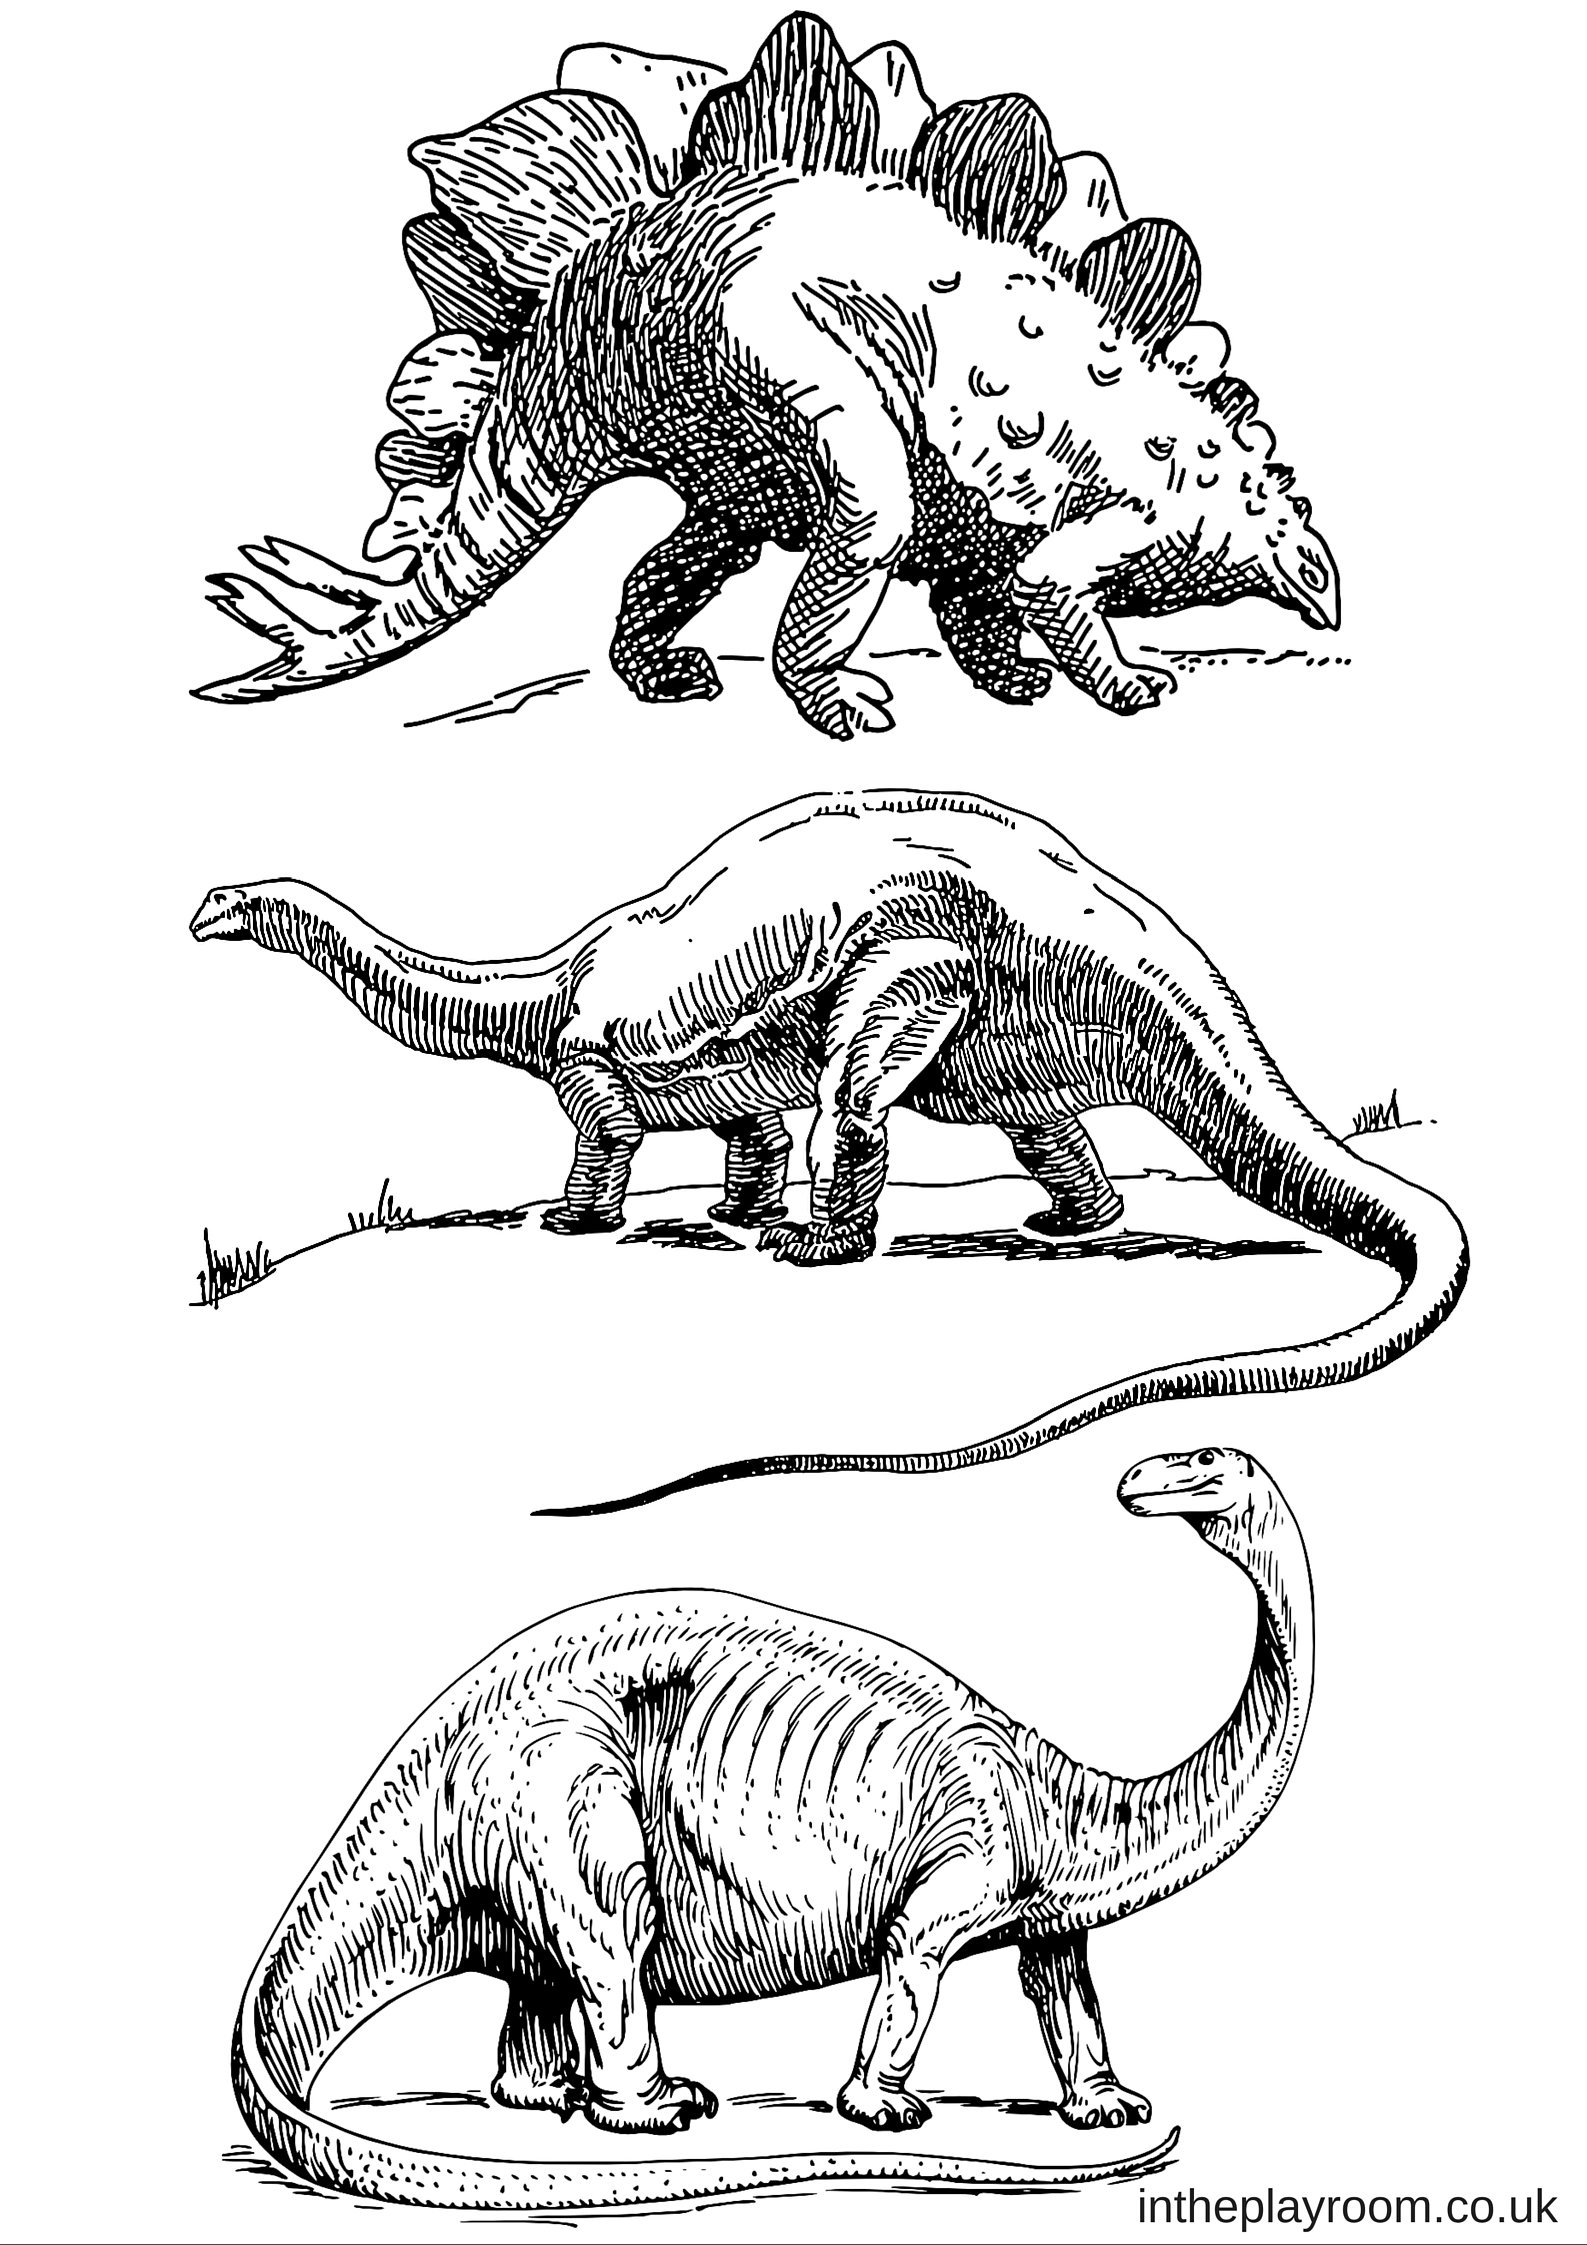 colouring dinosaur pictures baby dinosaur coloring pages for preschoolers activity dinosaur colouring pictures